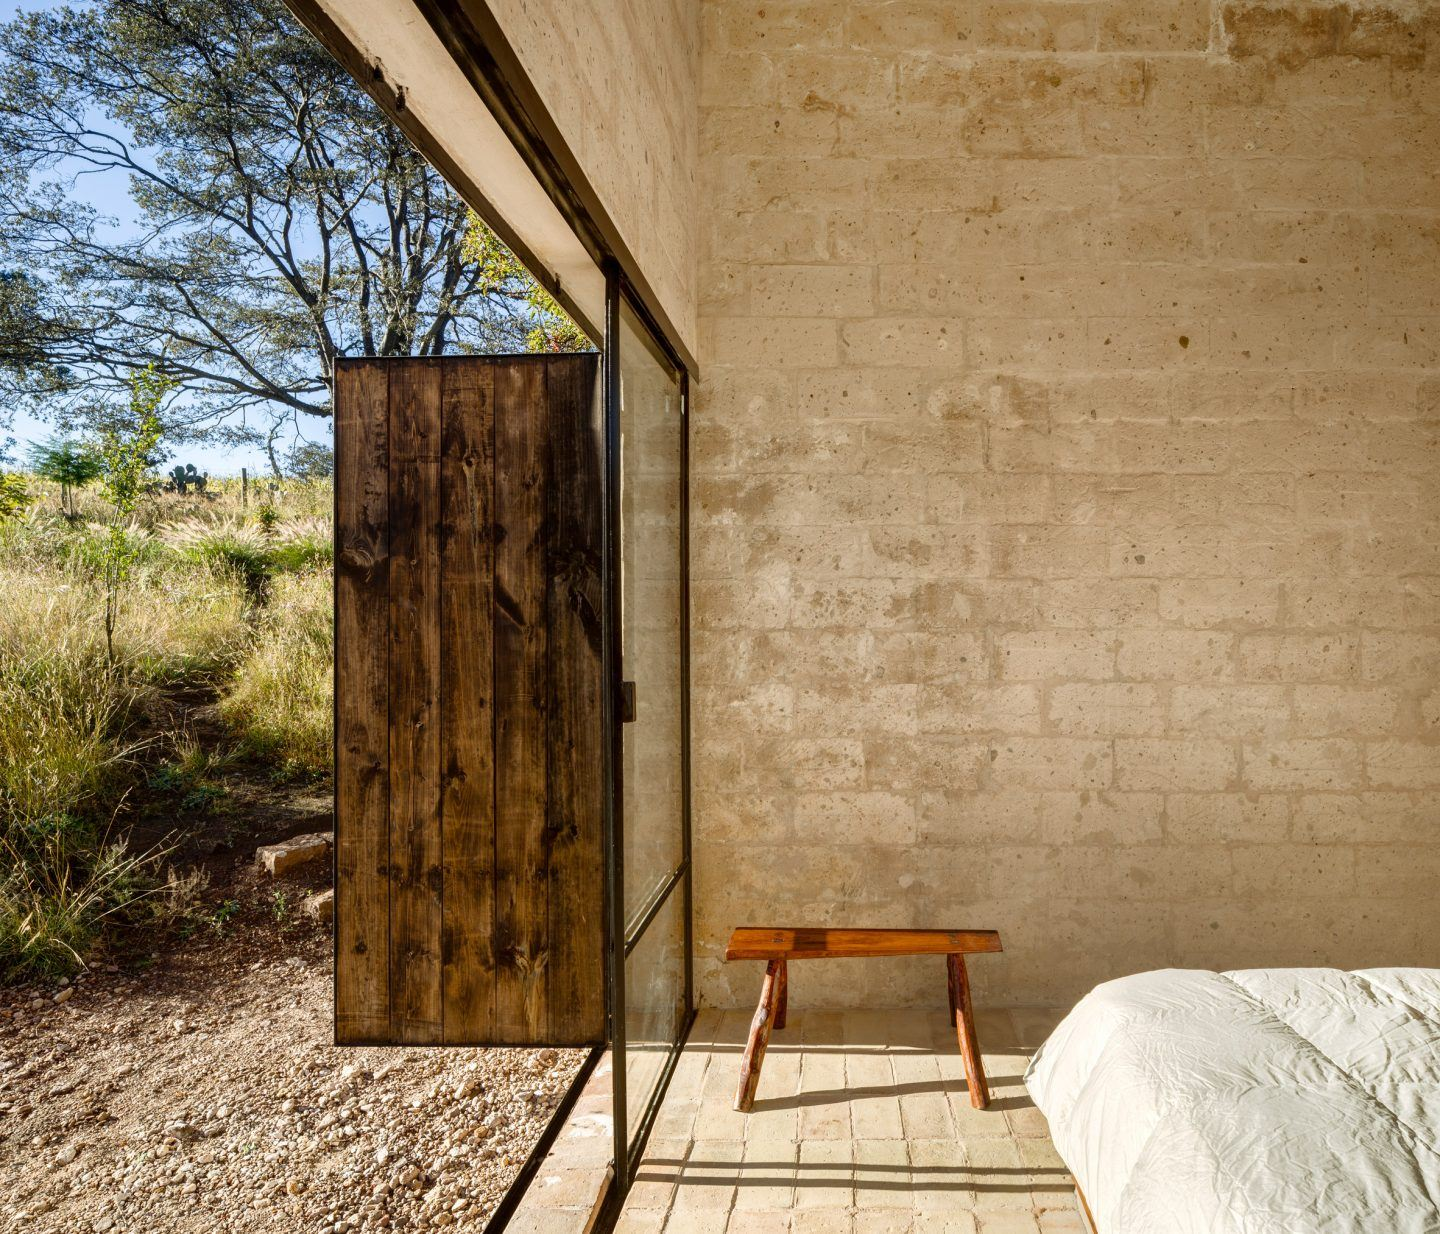 IGNANT-Architecture-PPAA-Arquitectos-Aculco-House-9